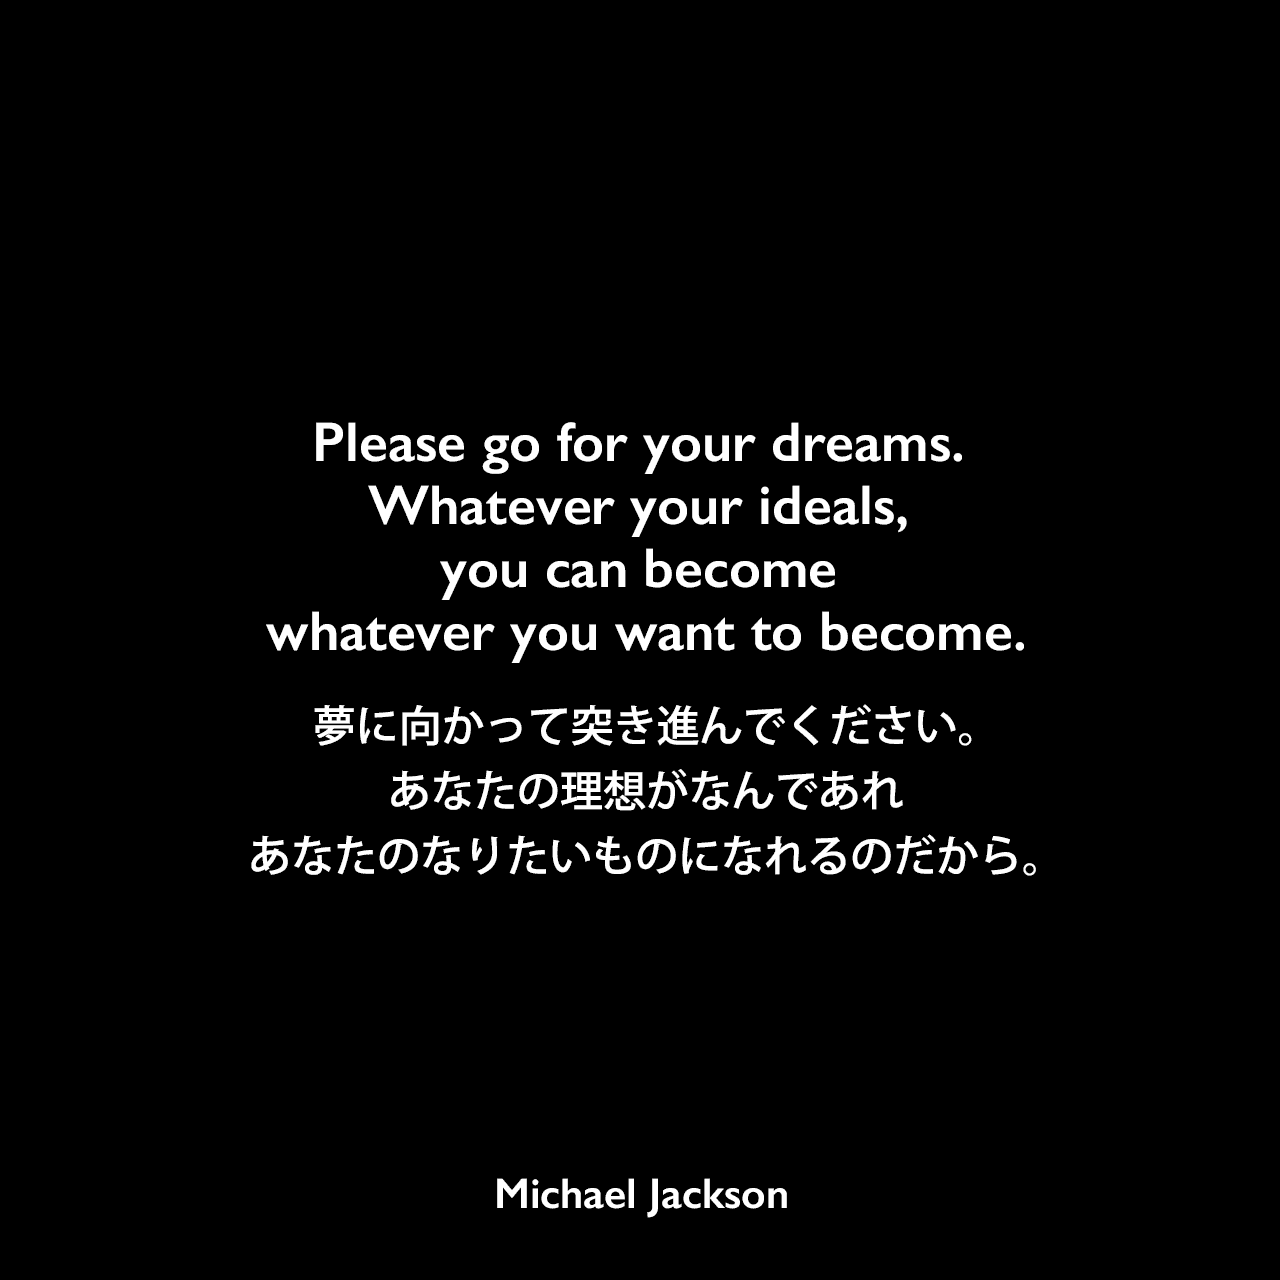 Please go for your dreams. Whatever your ideals, you can become whatever you want to become.夢に向かって突き進んでください。あなたの理想がなんであれあなたのなりたいものになれるのだから。Michael Jackson